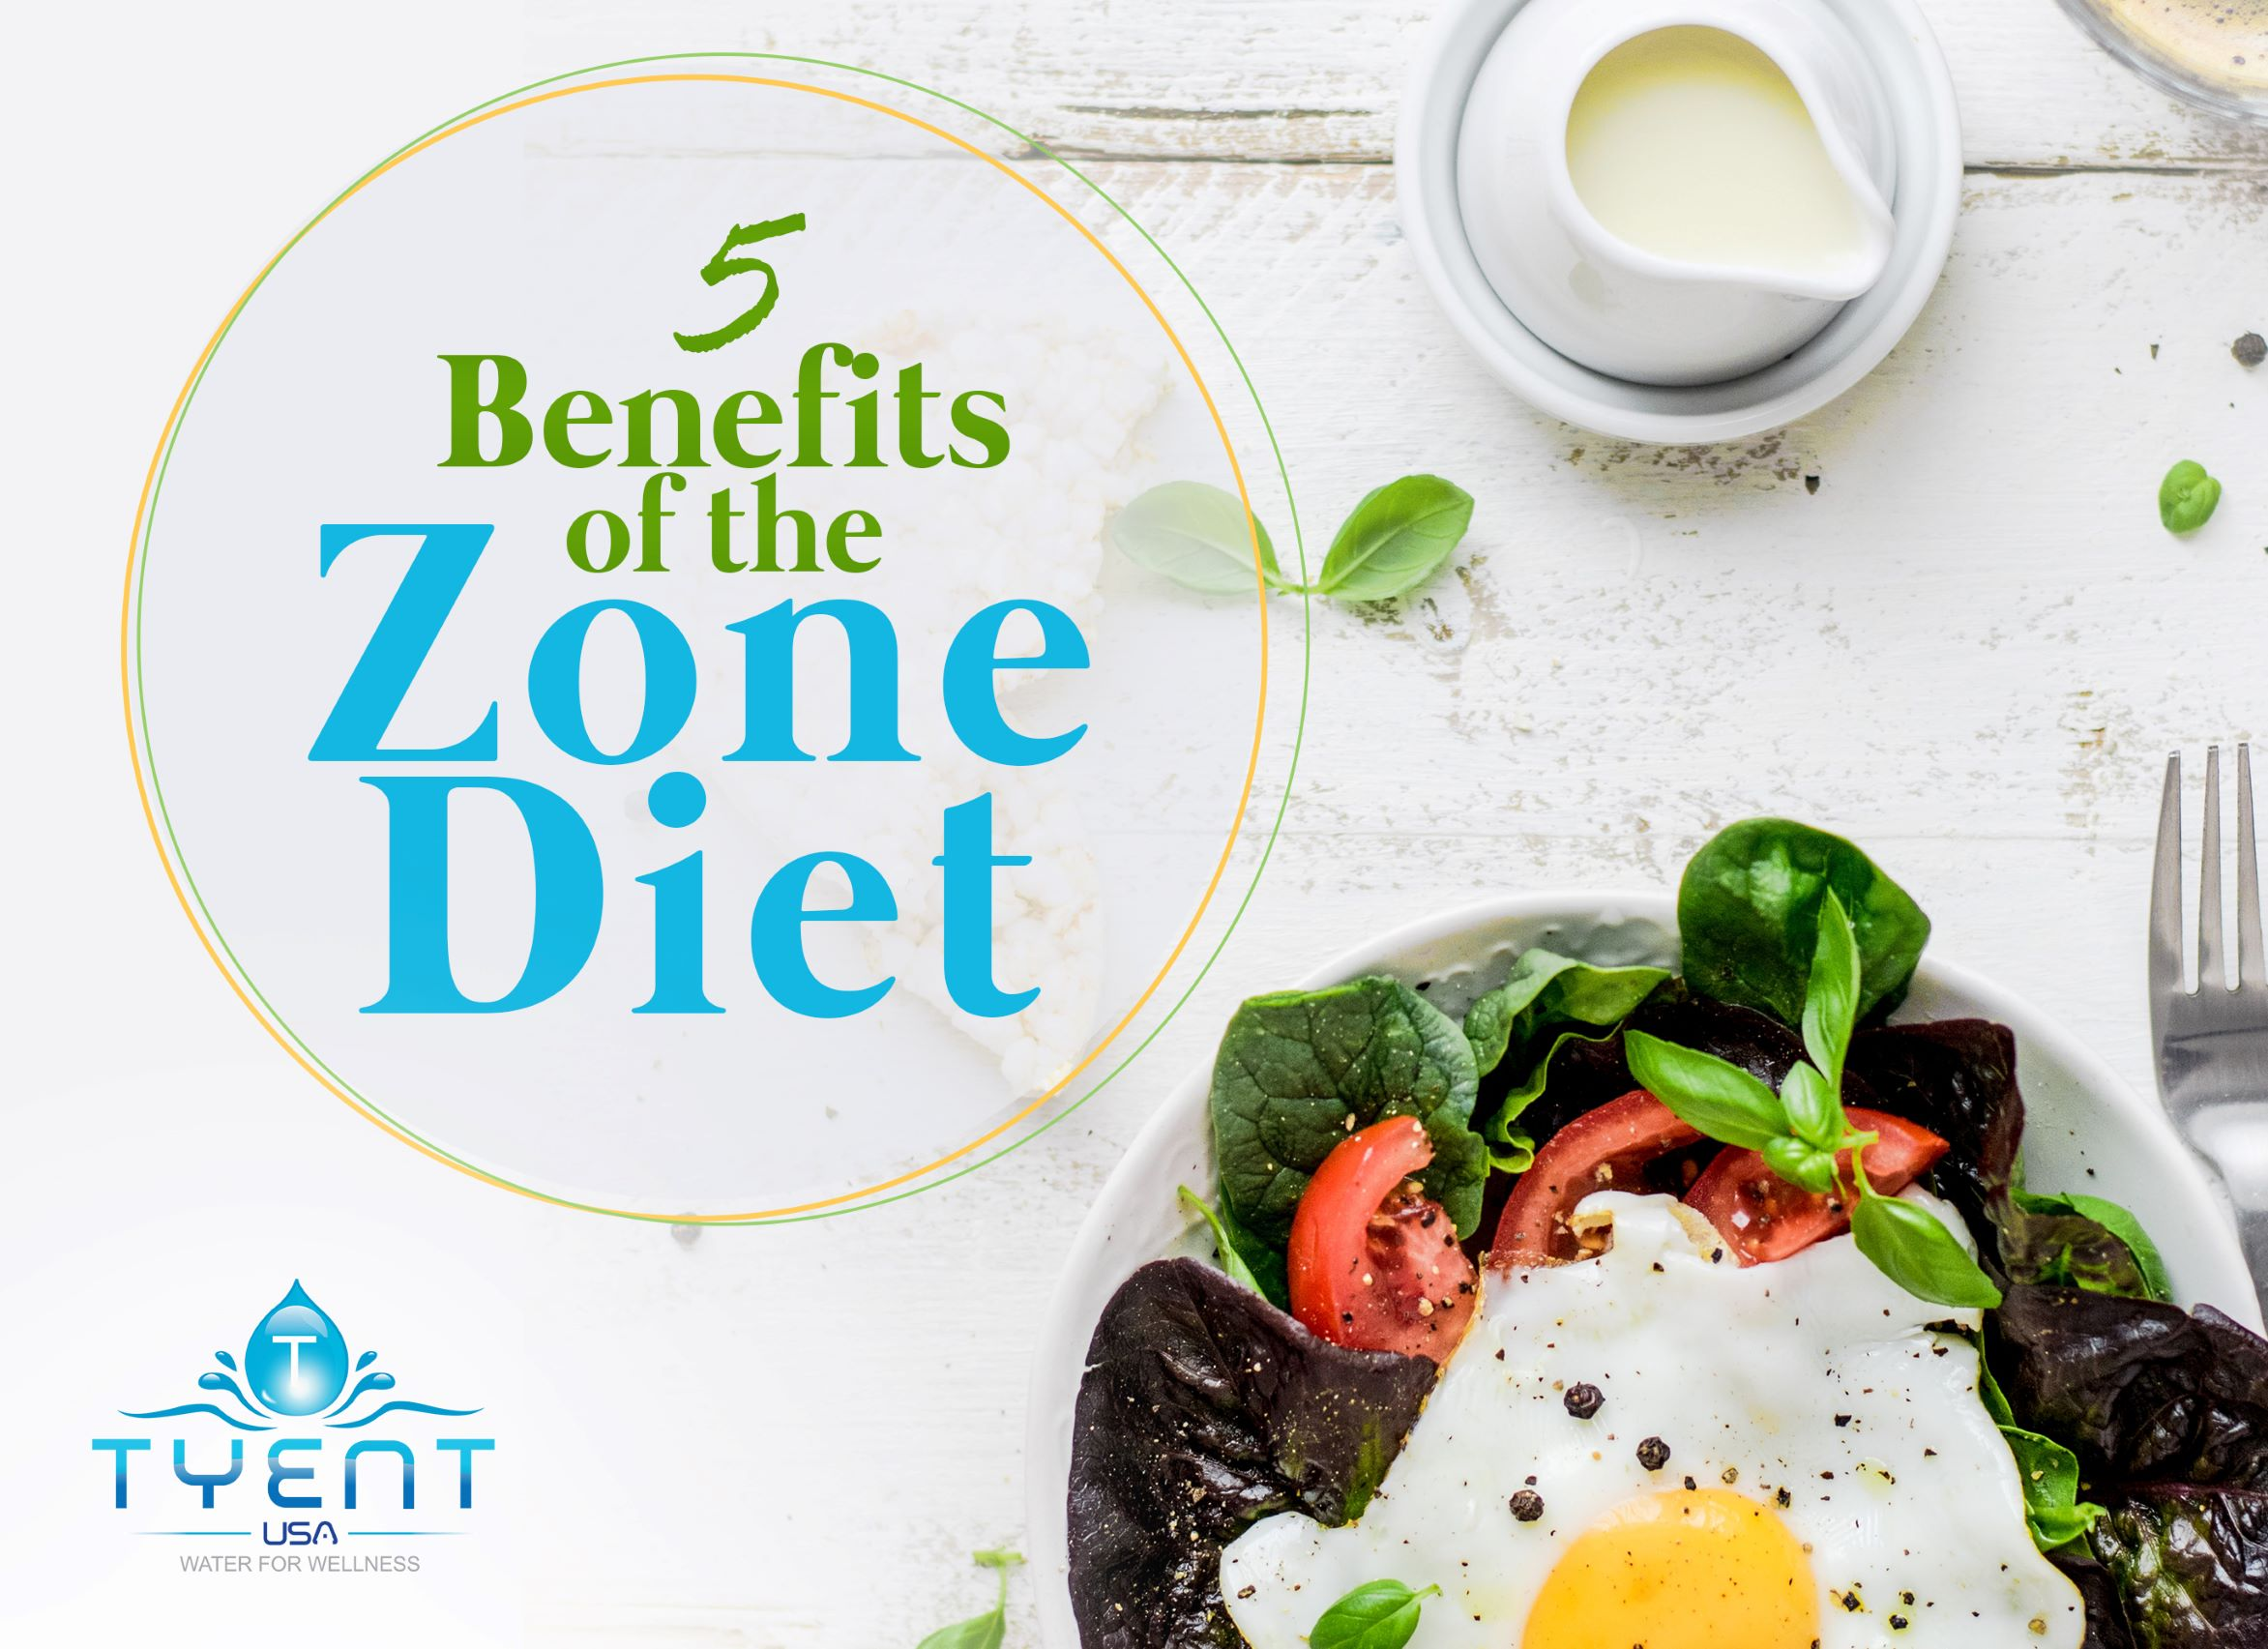 5 Benefits of the Zone Diet